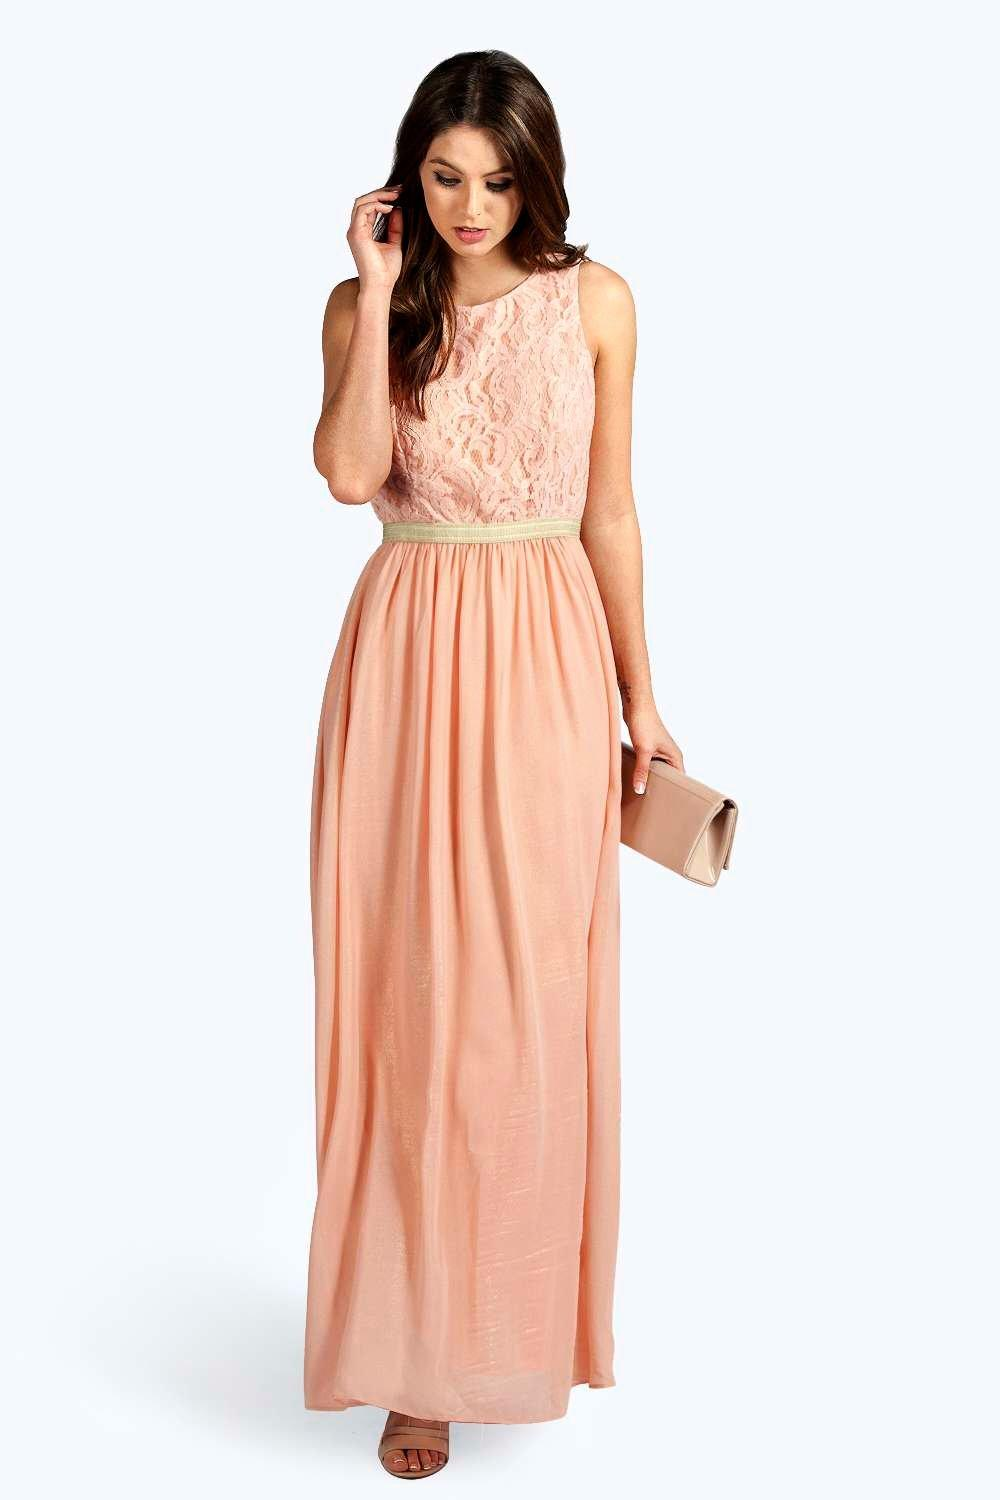 Boutique Zaynah Metallic Lace Detail Chiffon Maxi Dress at boohoo.com